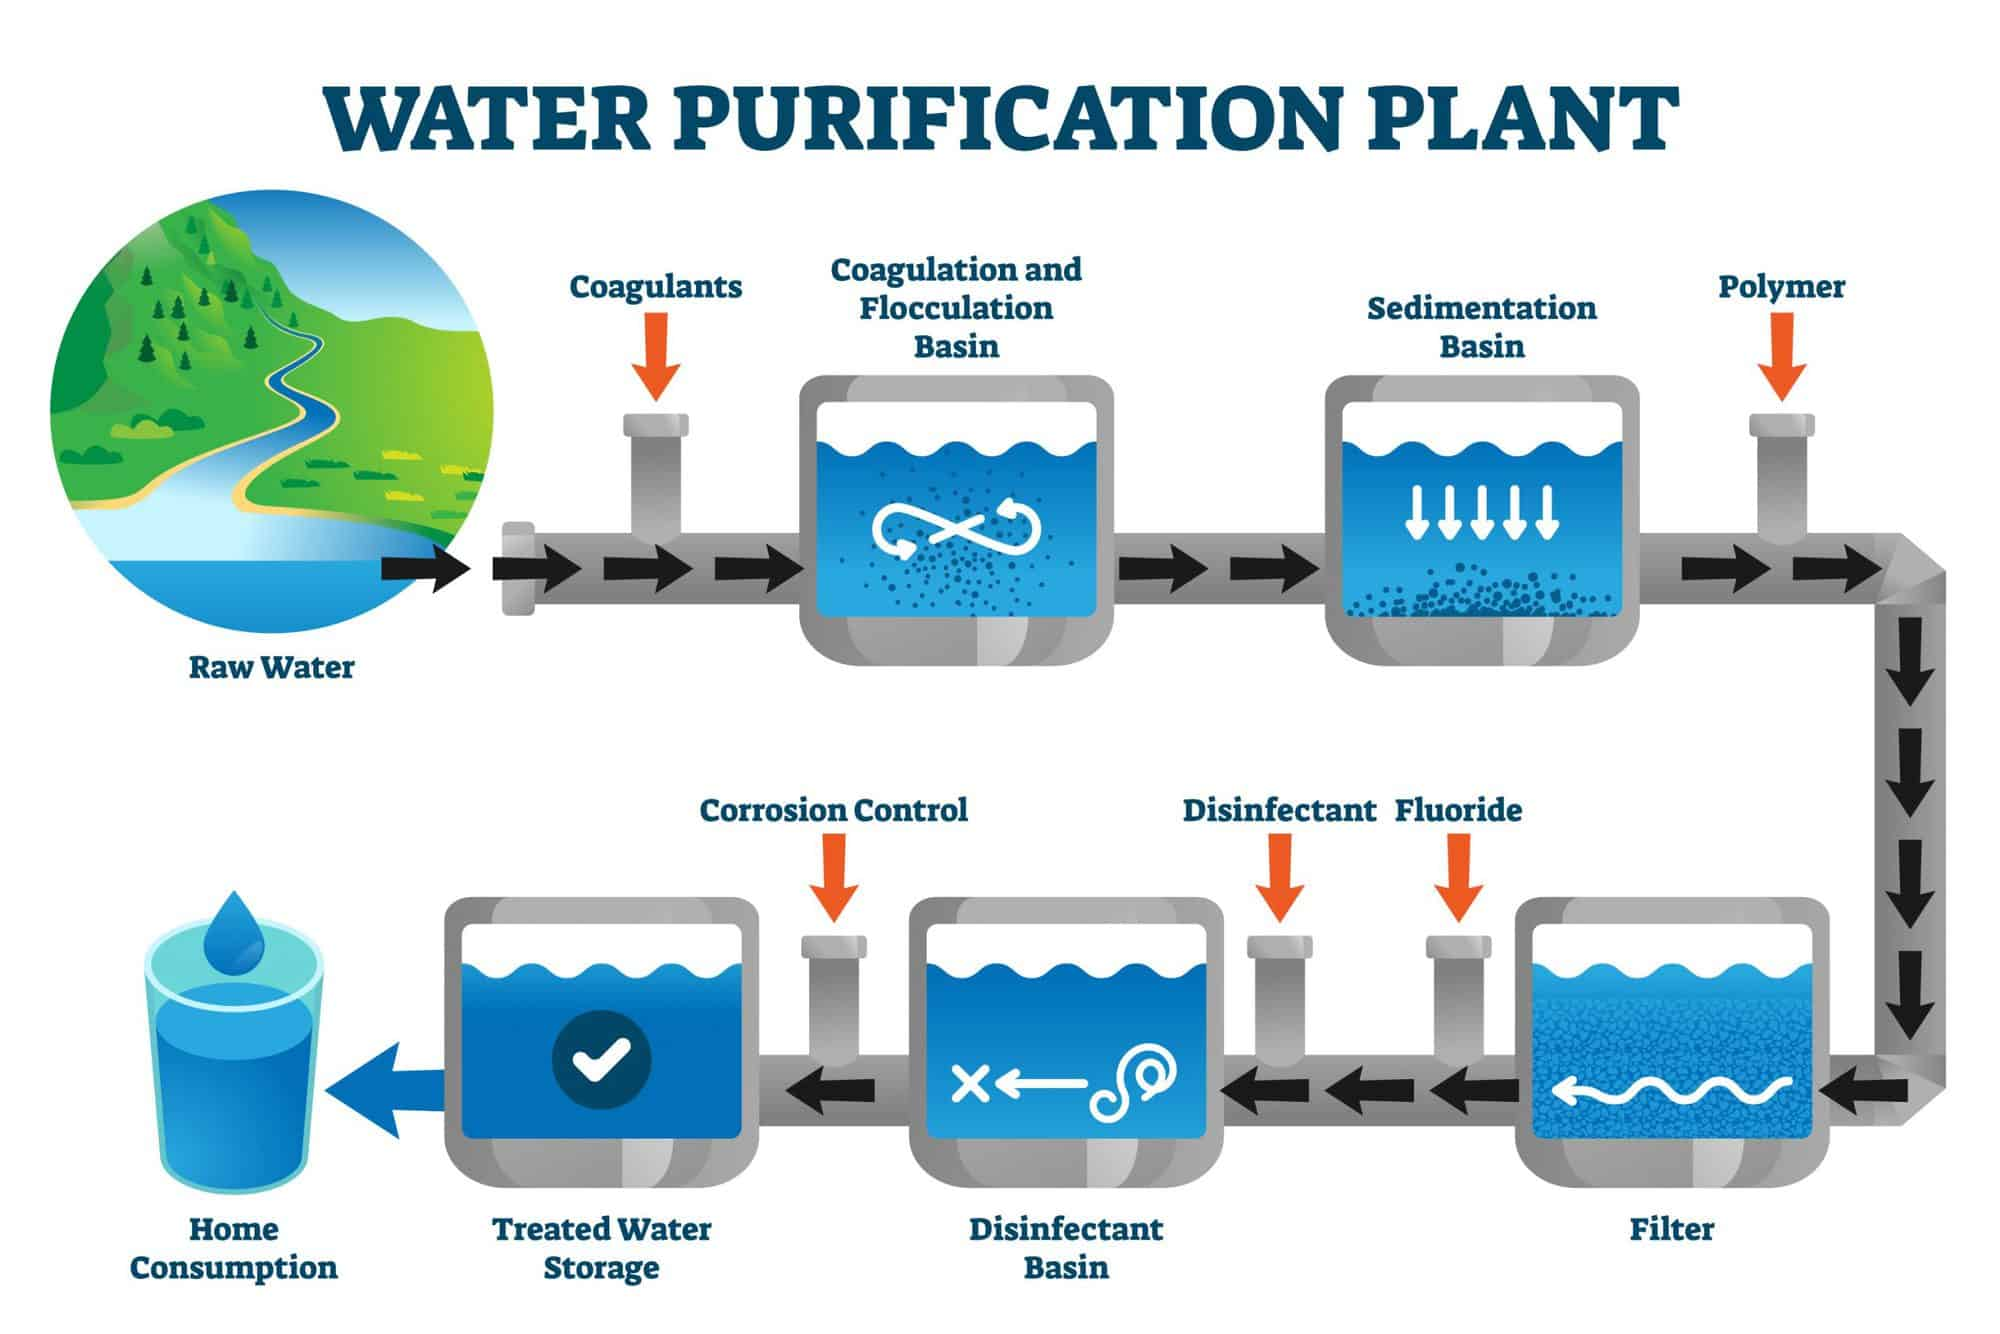 Water purification plant filtration process diagram